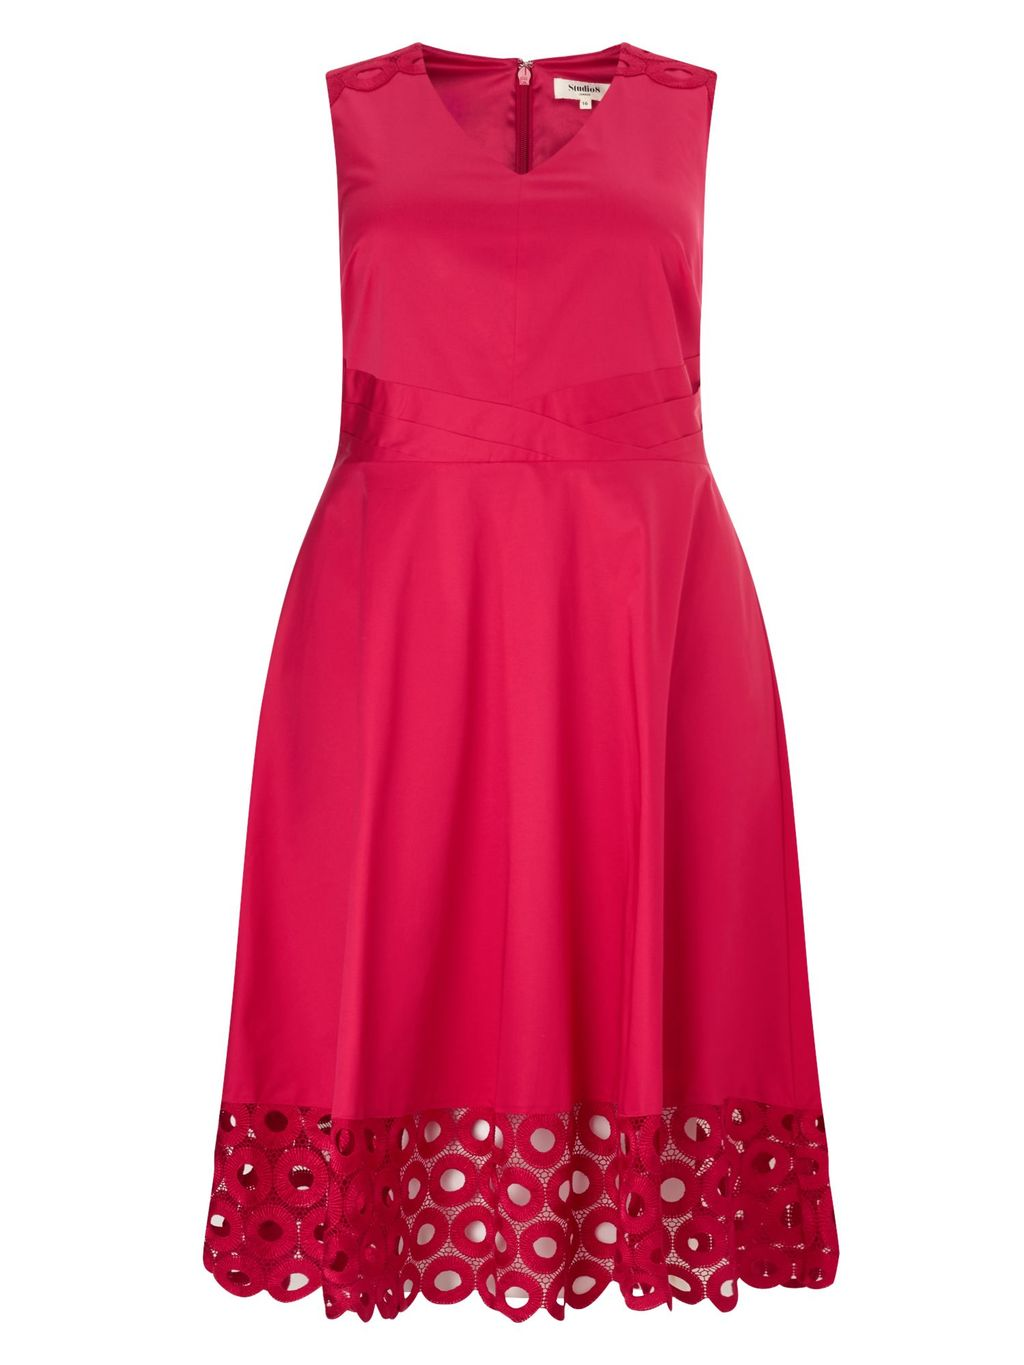 Adelaide Dress, Pink - neckline: v-neck; pattern: plain; sleeve style: sleeveless; predominant colour: hot pink; occasions: evening; length: just above the knee; fit: fitted at waist & bust; style: fit & flare; fibres: cotton - stretch; sleeve length: sleeveless; pattern type: fabric; texture group: other - light to midweight; embellishment: lace; season: s/s 2016; wardrobe: event; embellishment location: hem